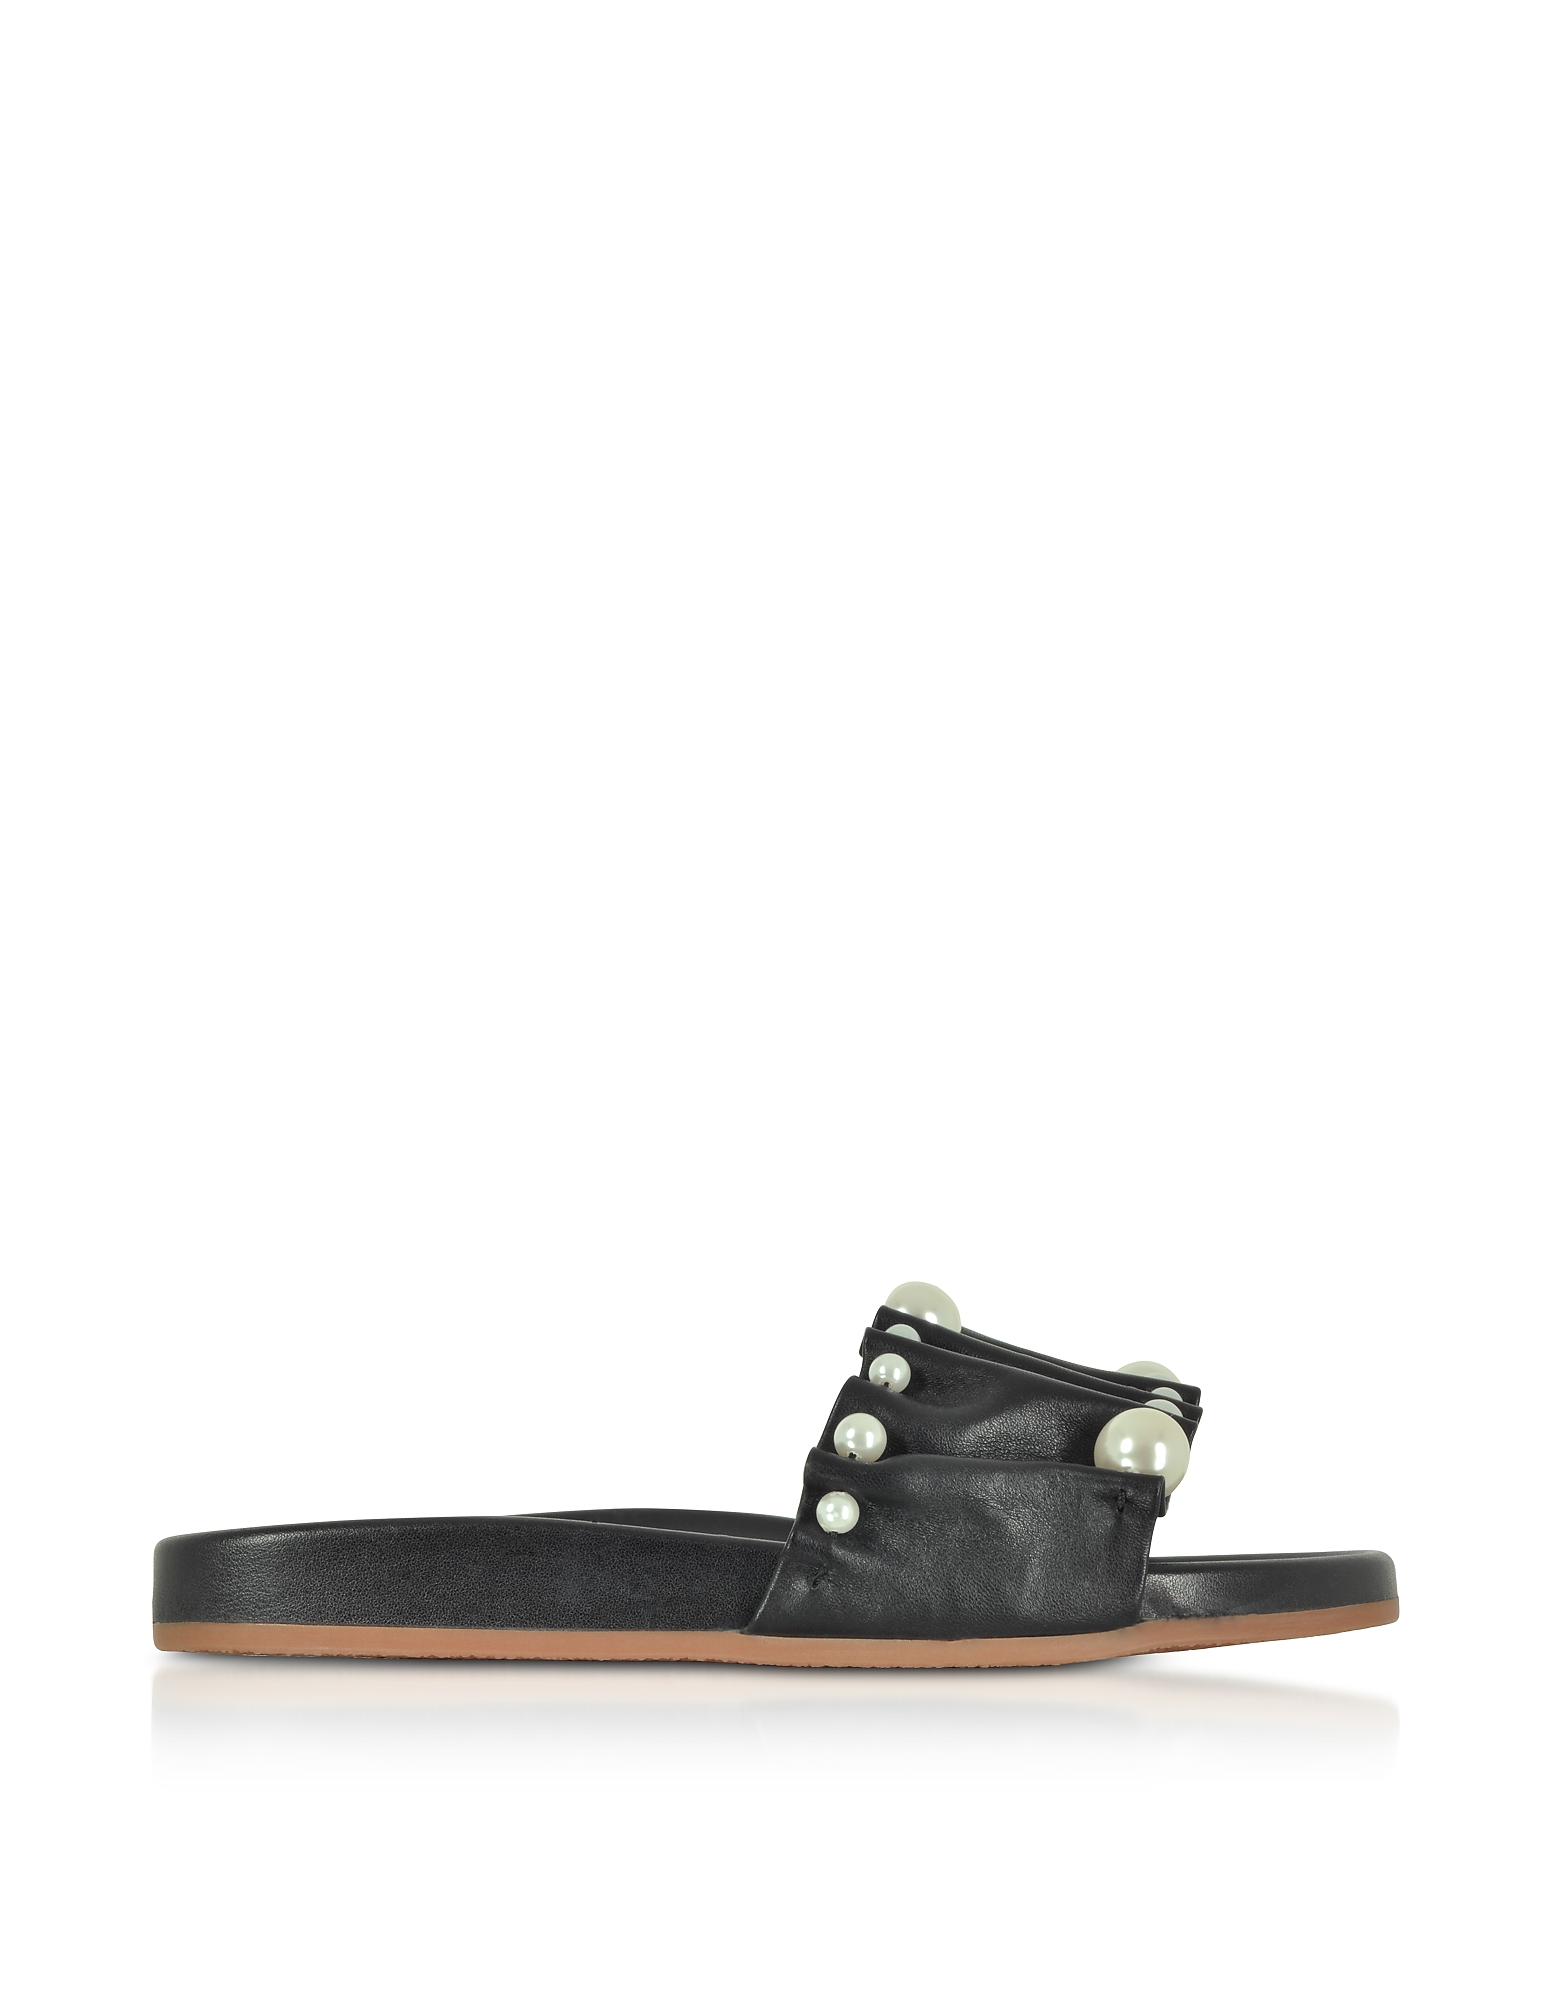 Image of Charlotte Olympia Designer Shoes, Black Pleated Nappa Leather Slide Sandals w/Pearls